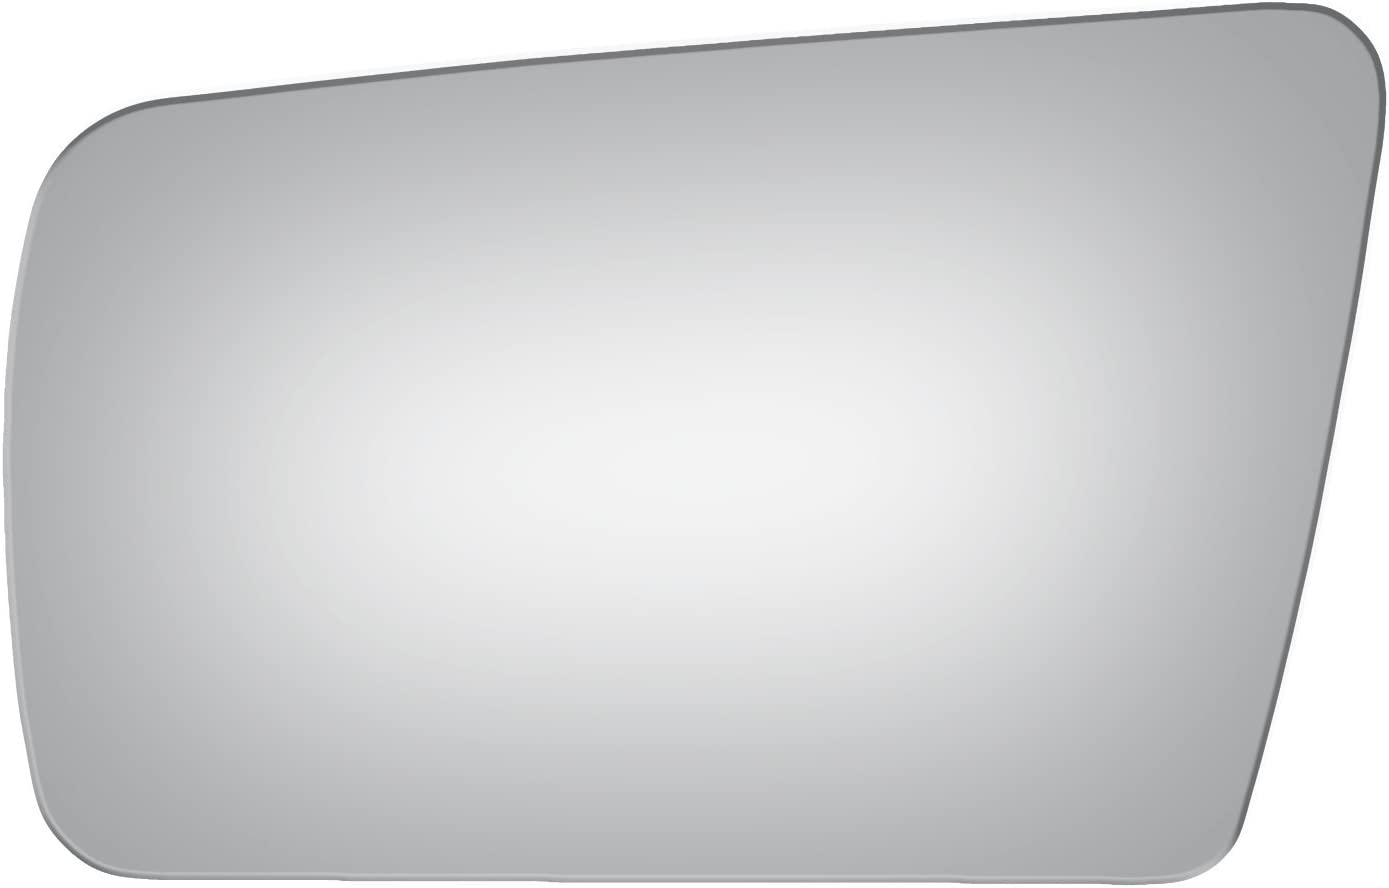 Heated Door Mirror Glass and Backing Plate LEFT fits 1996-1999 MB E-class W210